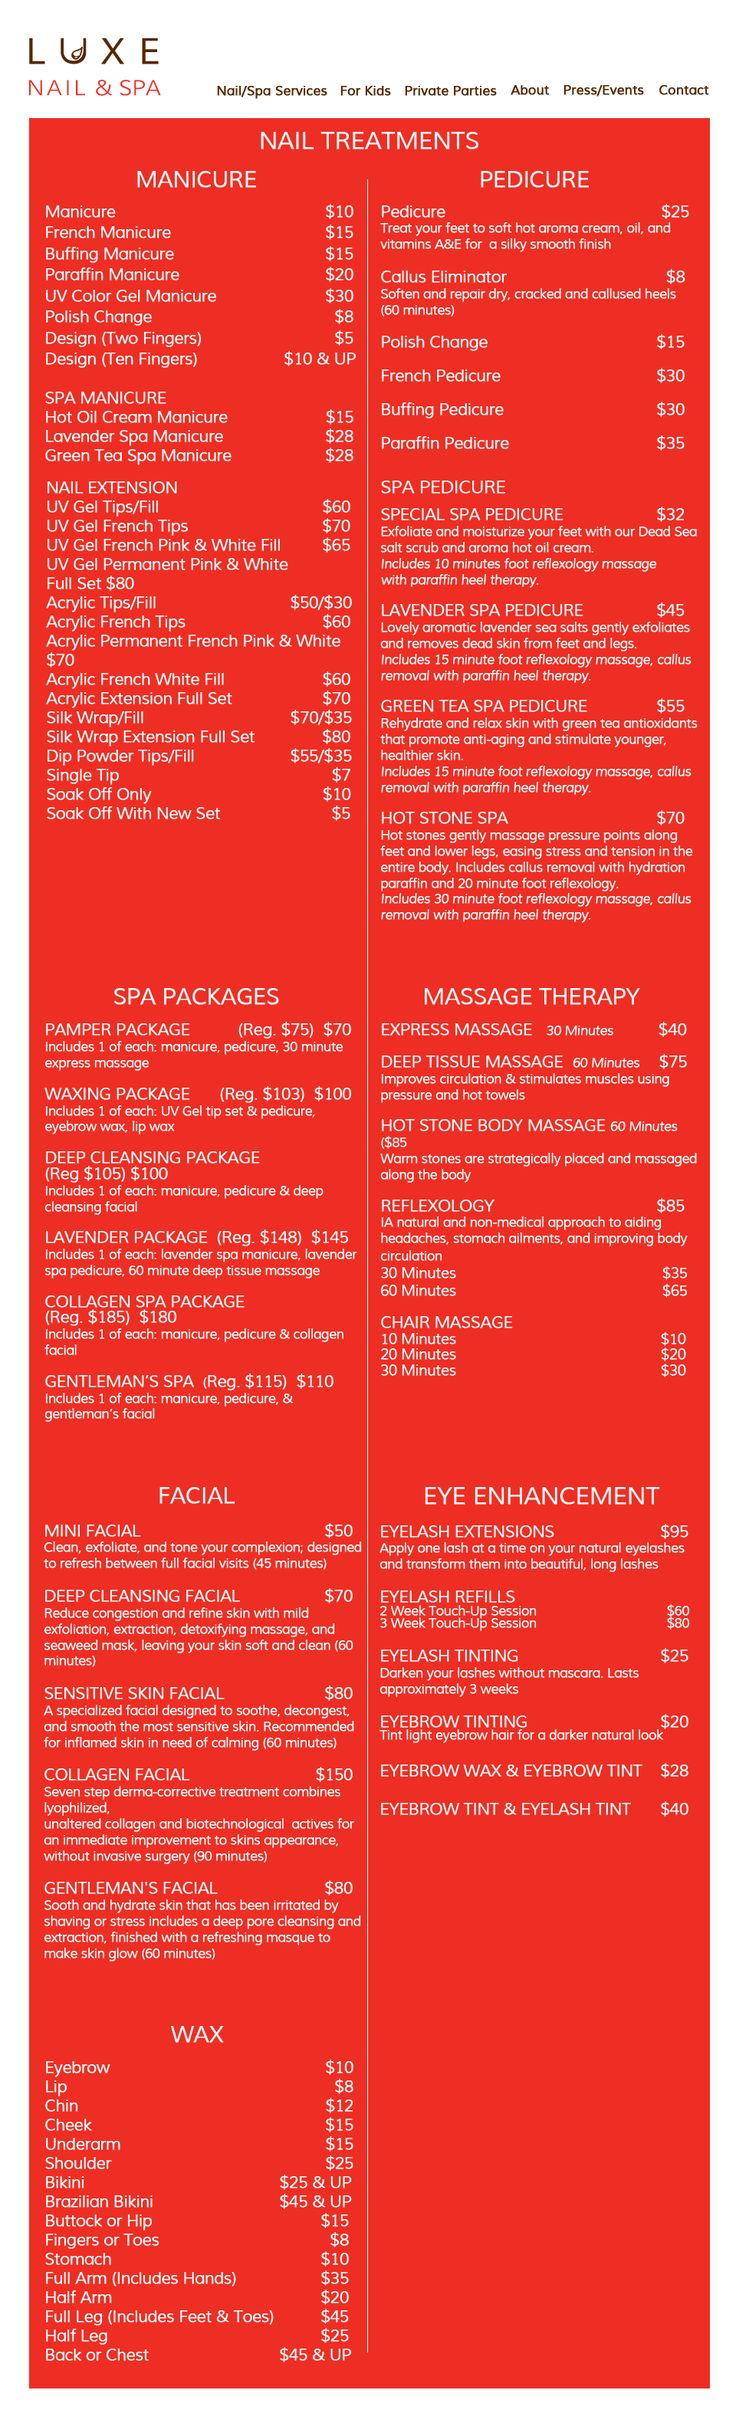 Nail/Spa Services: Manicure, Pedicure, Spa Packages, Massage Therapy, Facial, Eye Enhancement and Waxing